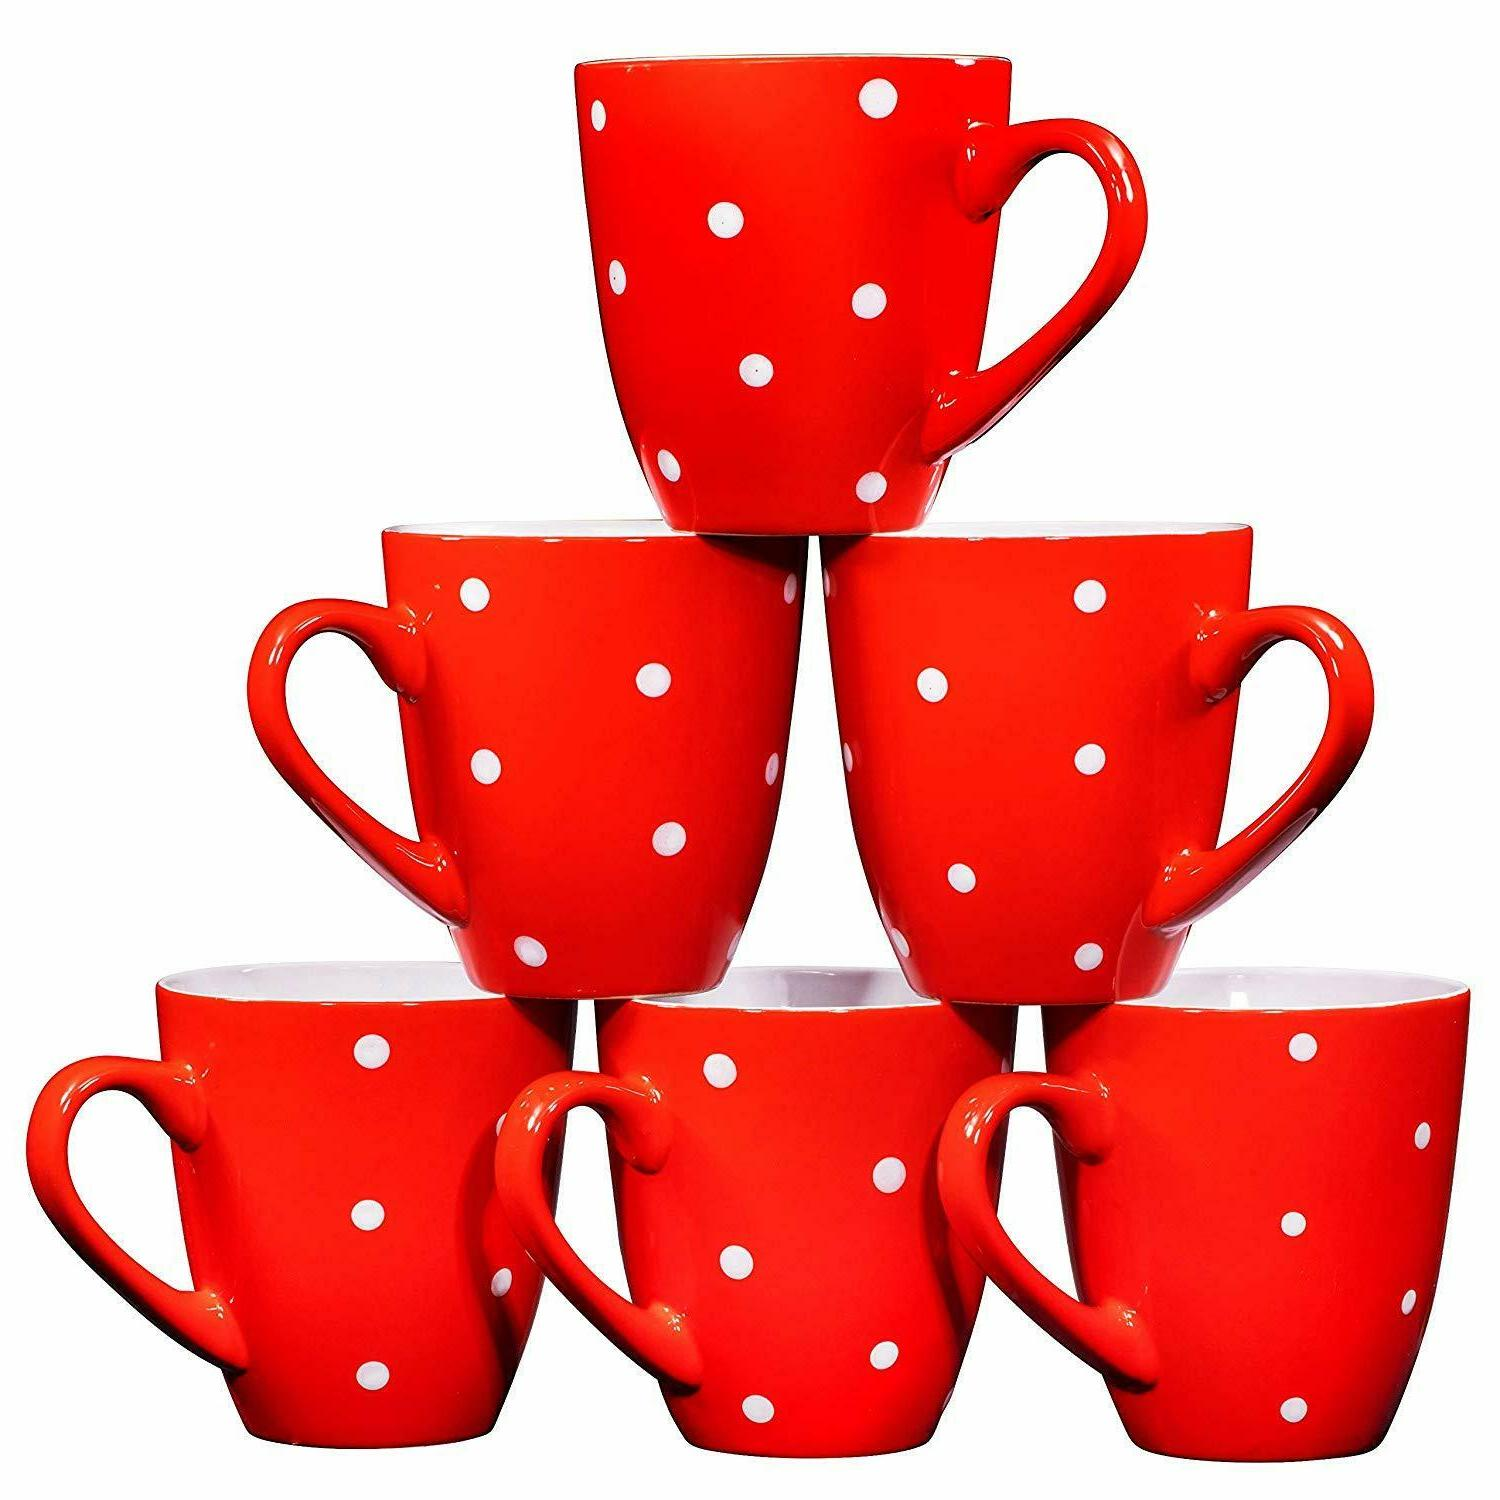 Bruntmor Ceramic Coffee Mugs Set of 6 Large sized Polka Dot